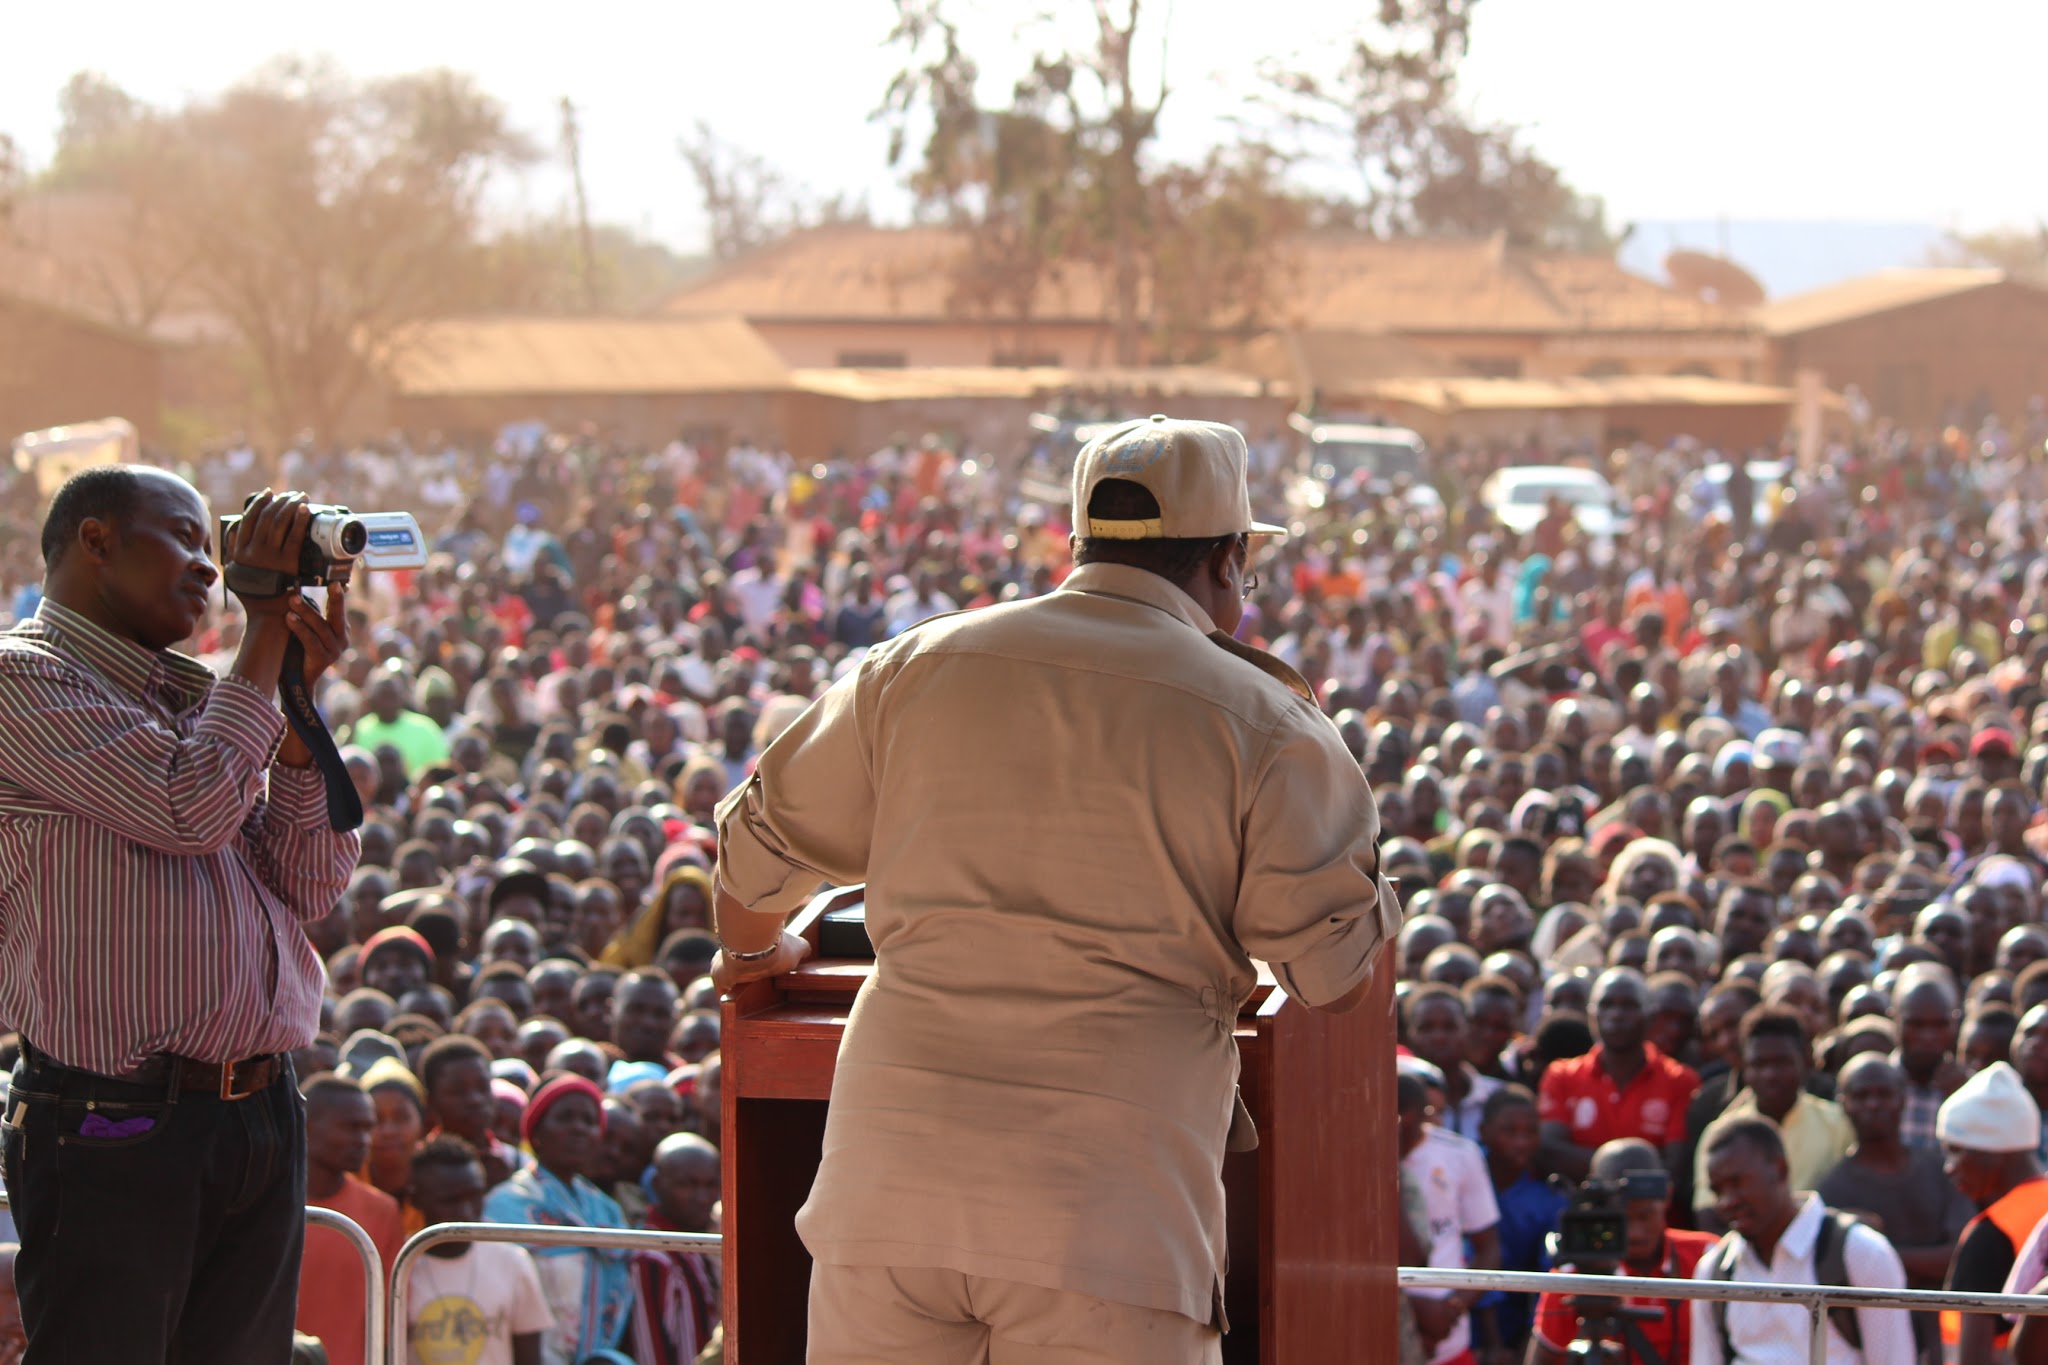 <p>Tundu Lissu speaking to a crowd. Wikimedia</p>